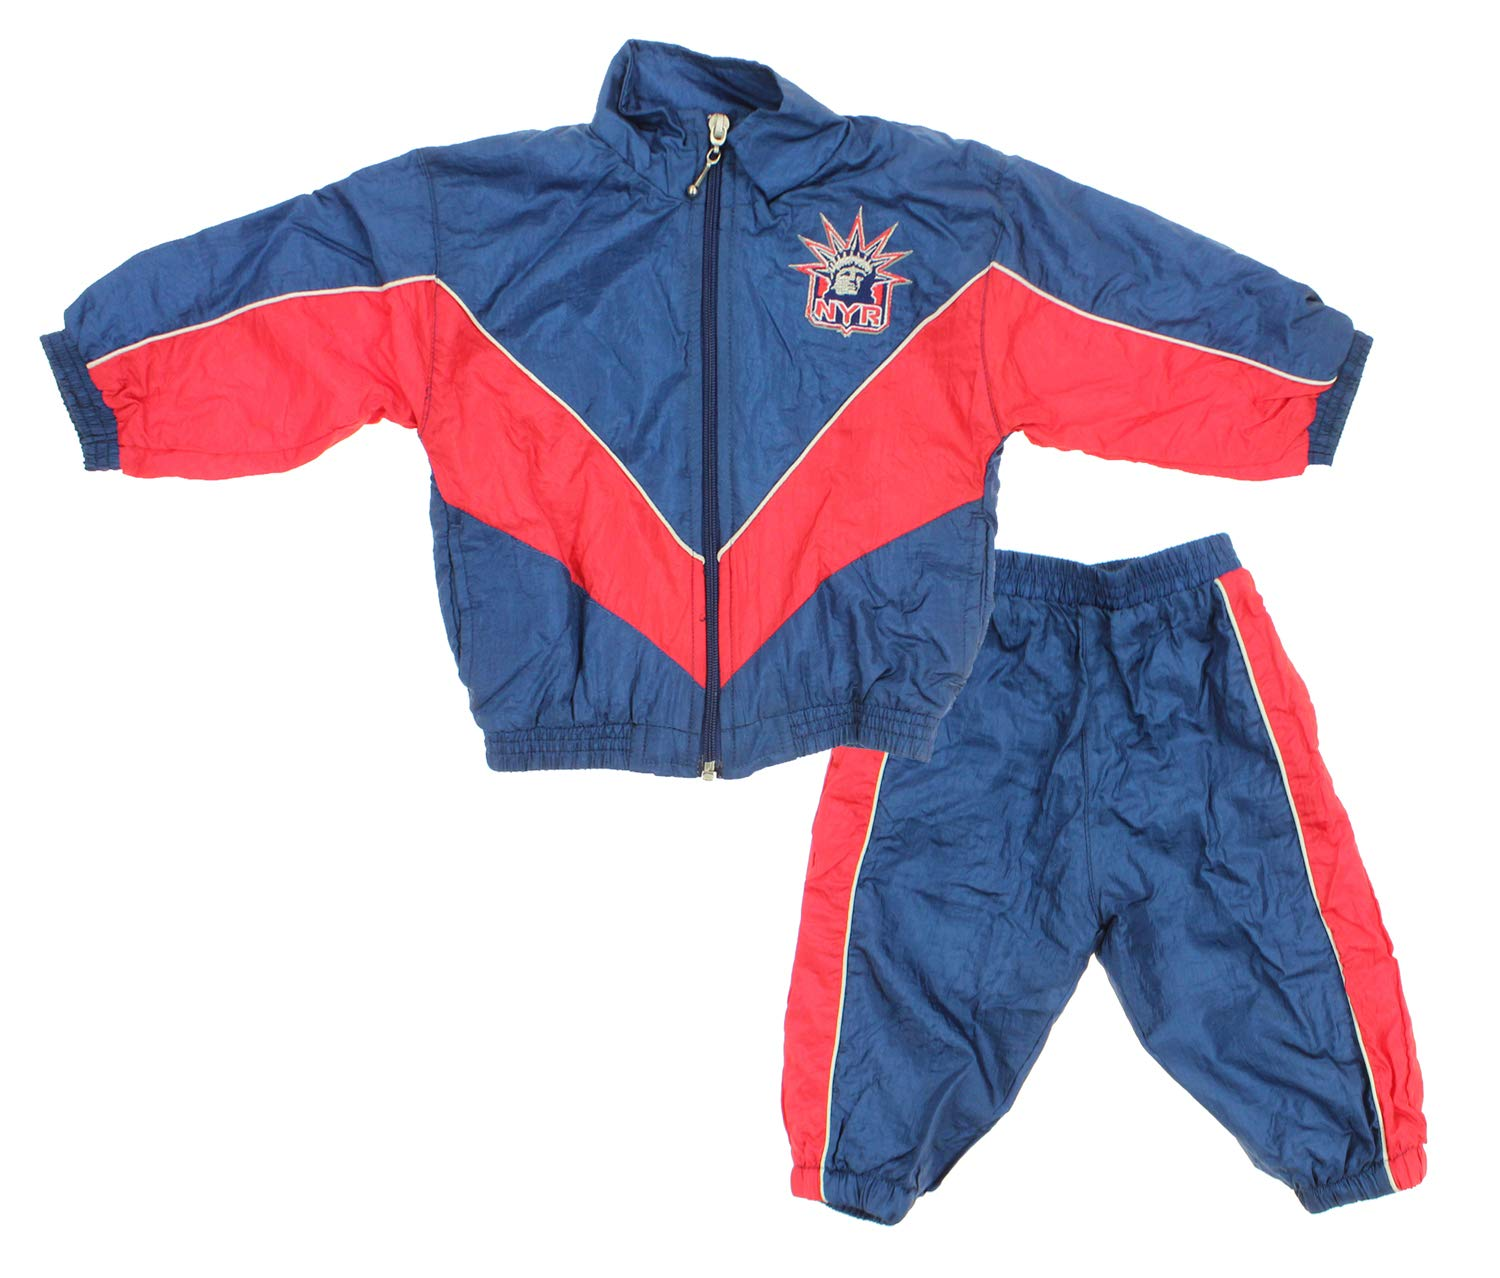 Mighty Mac New York Rangers NHL Baby Boys Infant 2 Piece Retro Crinkle Wind  Suit 6bcc54312